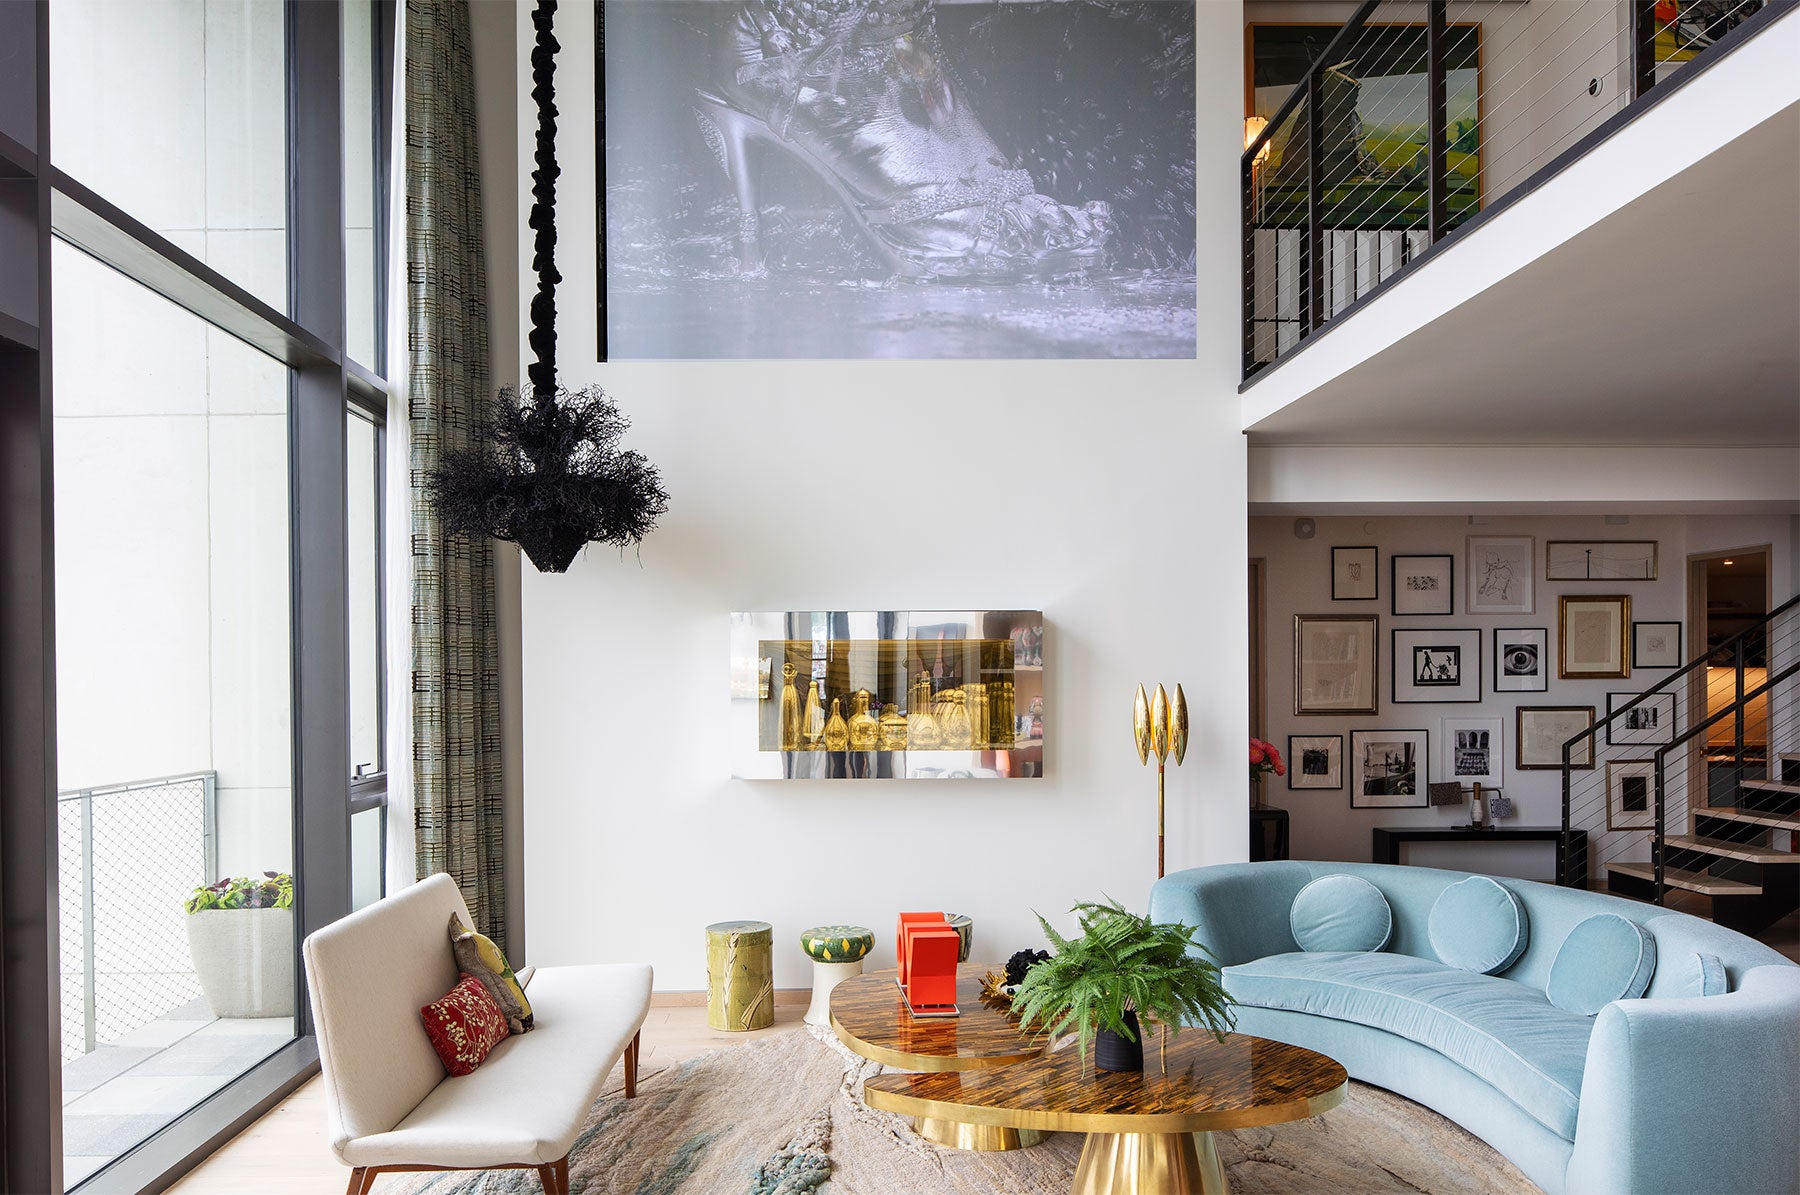 Marilyn Minter video installation is projected on the wall of the living room above a Josiah McEleheny vitrine and 1940s ceramic stools from 1stdibs. The black hanging sculpture is by Petah Clyne, and the sofa is by India Mahdavi